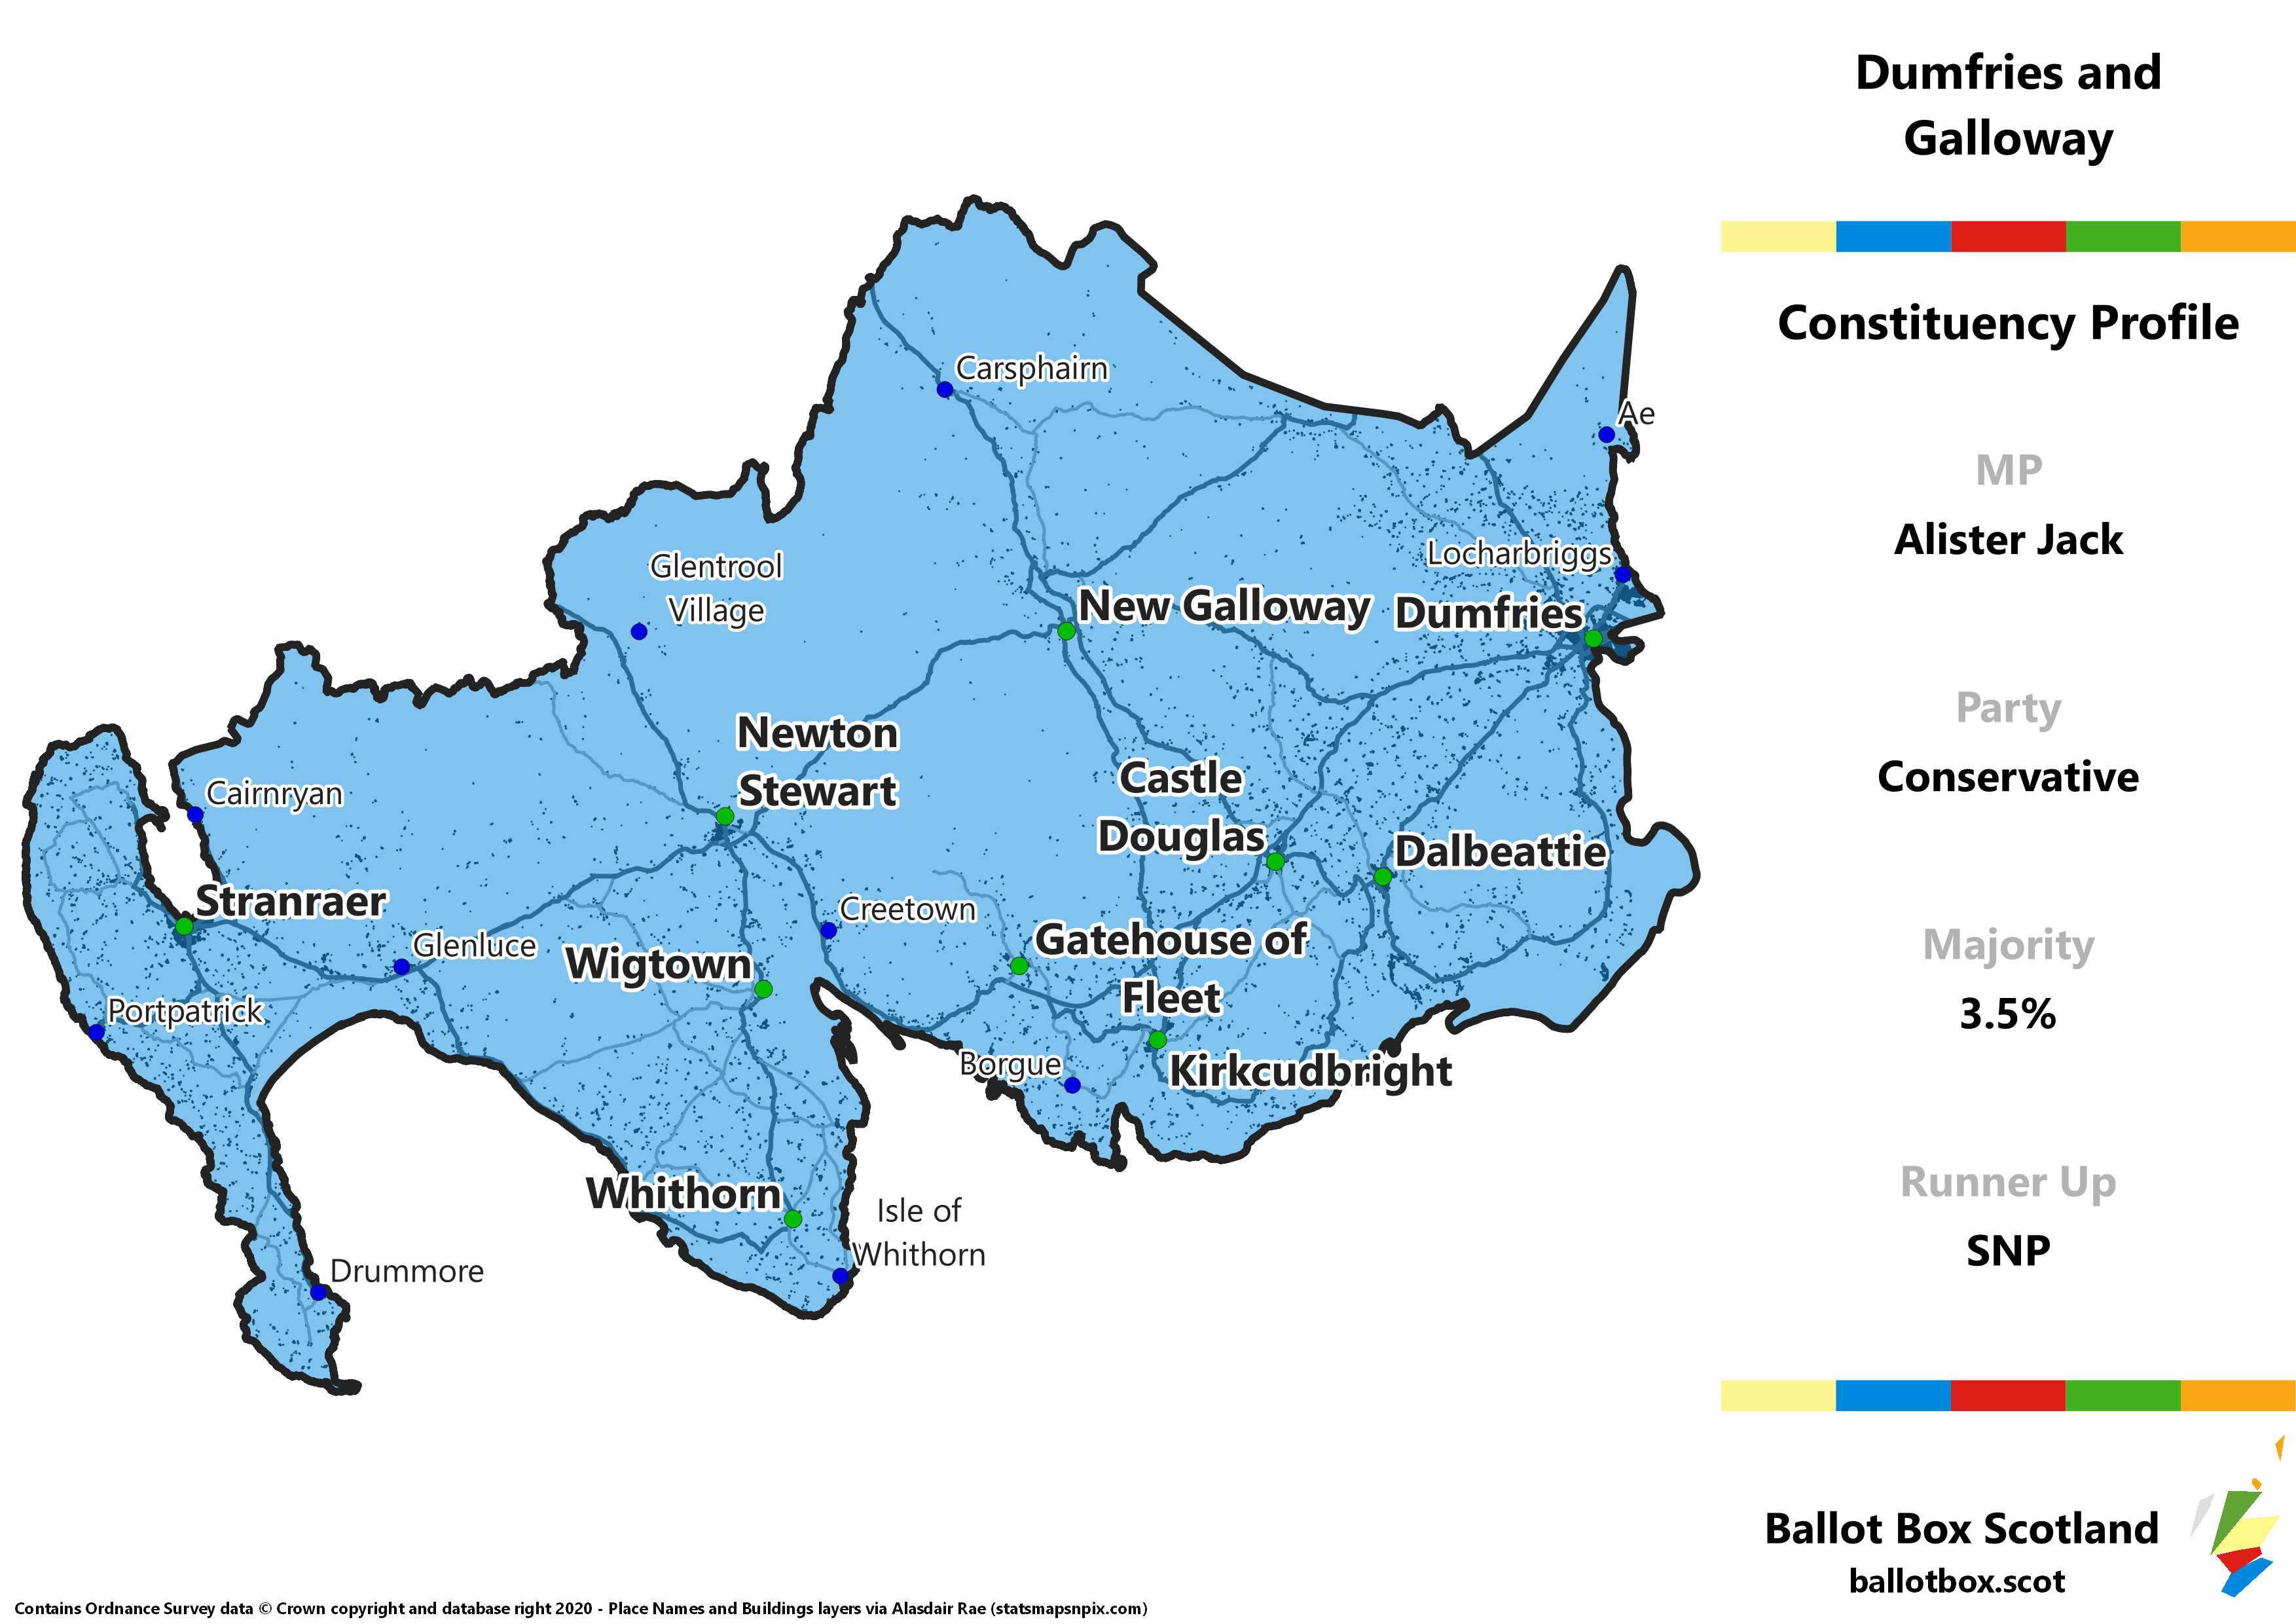 Dumfries and Galloway Constituency Map